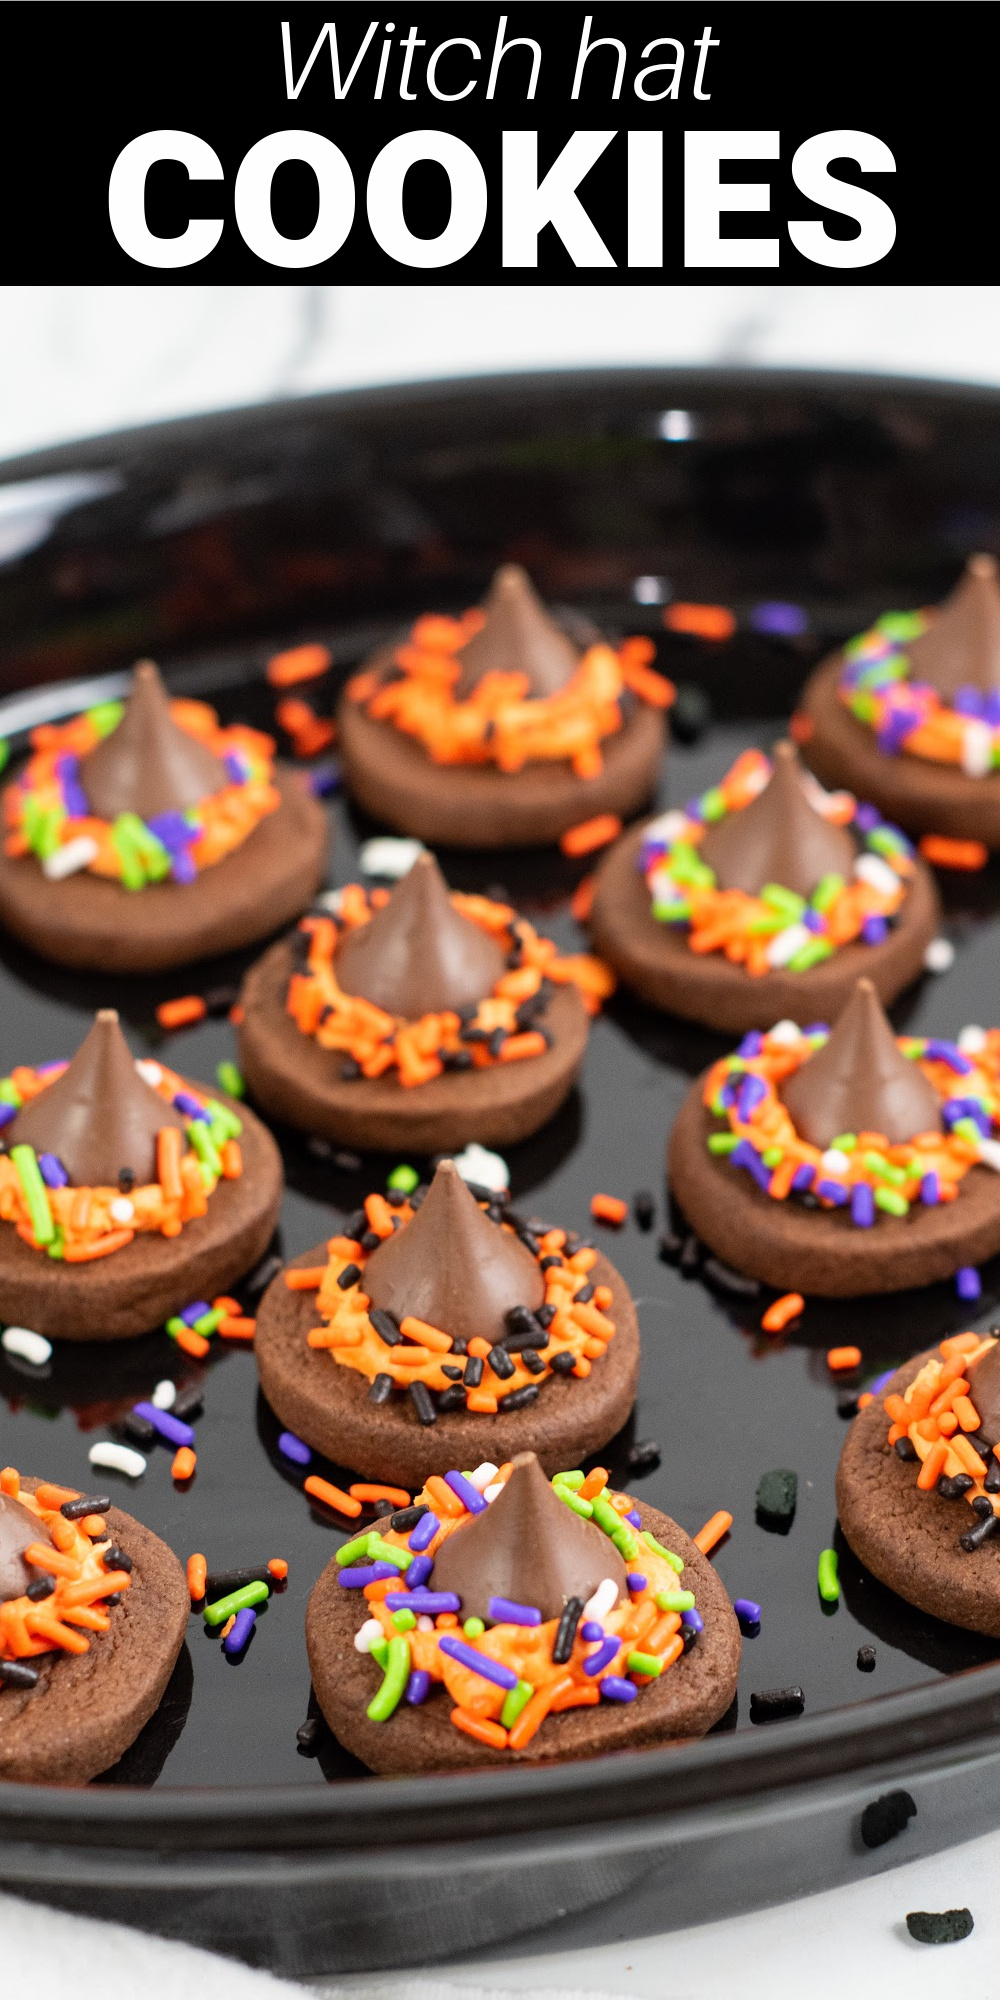 Witch hat cookies are a simple and fun treat that's perfect for Halloween. The base is a chocolate cookie topped with a creamy homemade buttercream frosting and a Hershey's kiss.